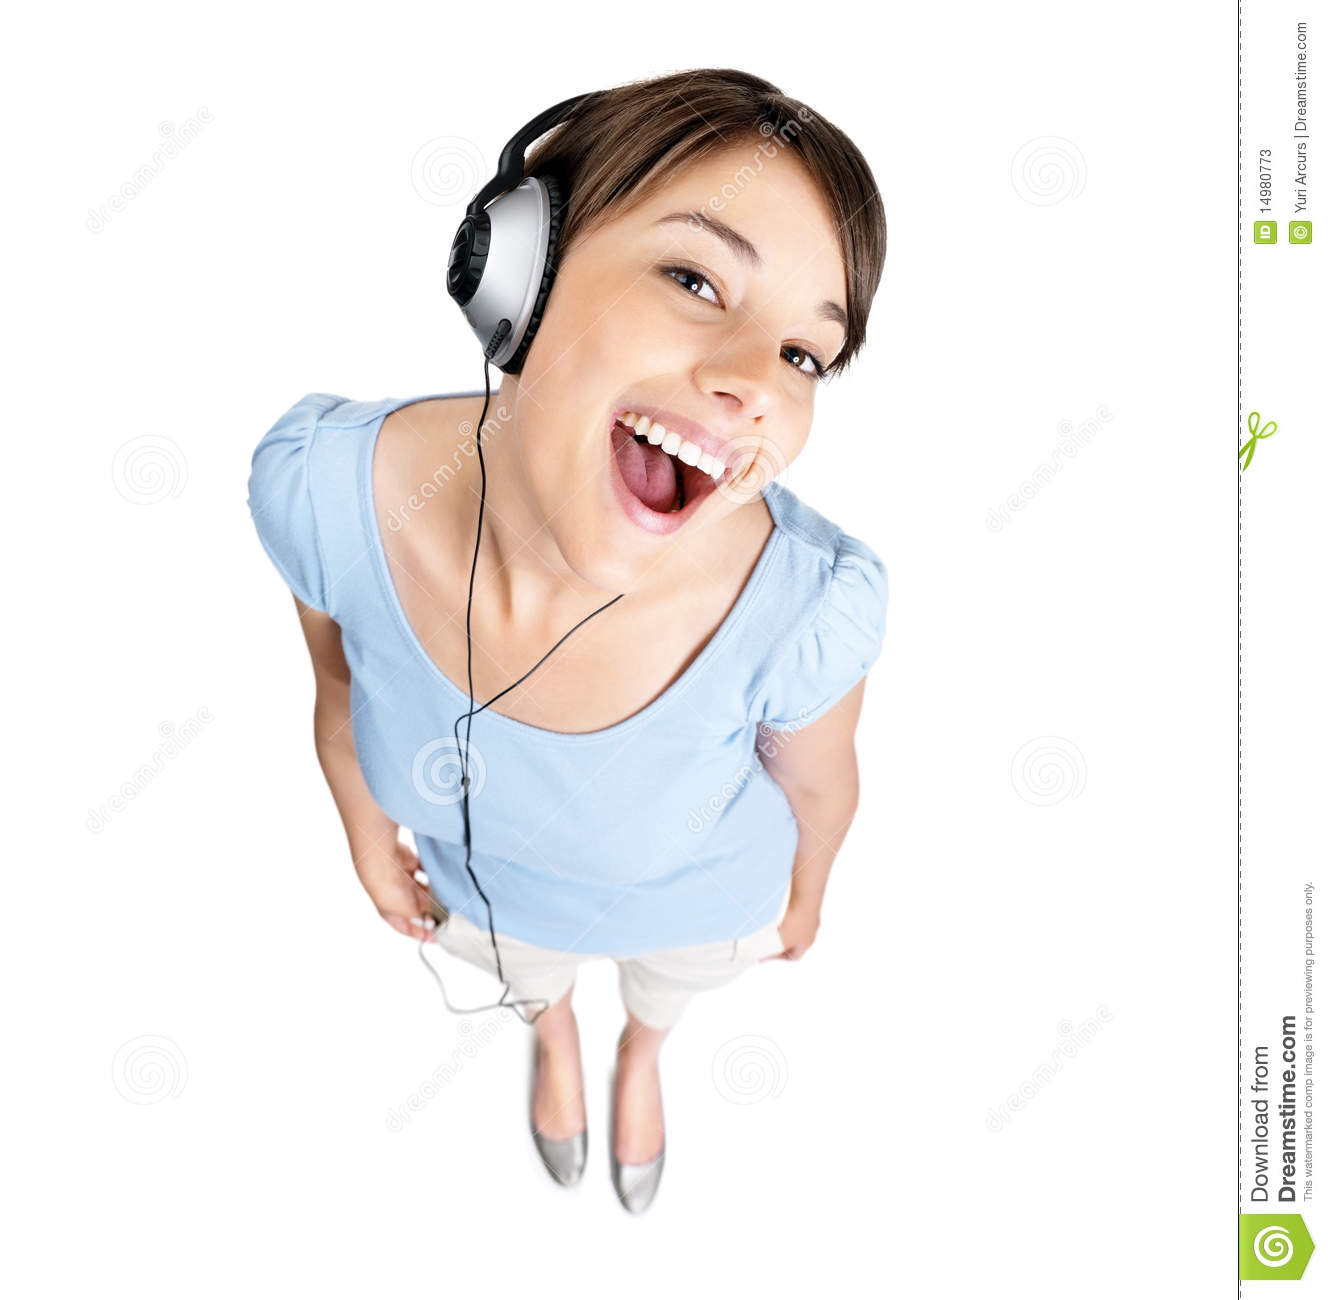 Stock Photos: Excited female listening to music on ...